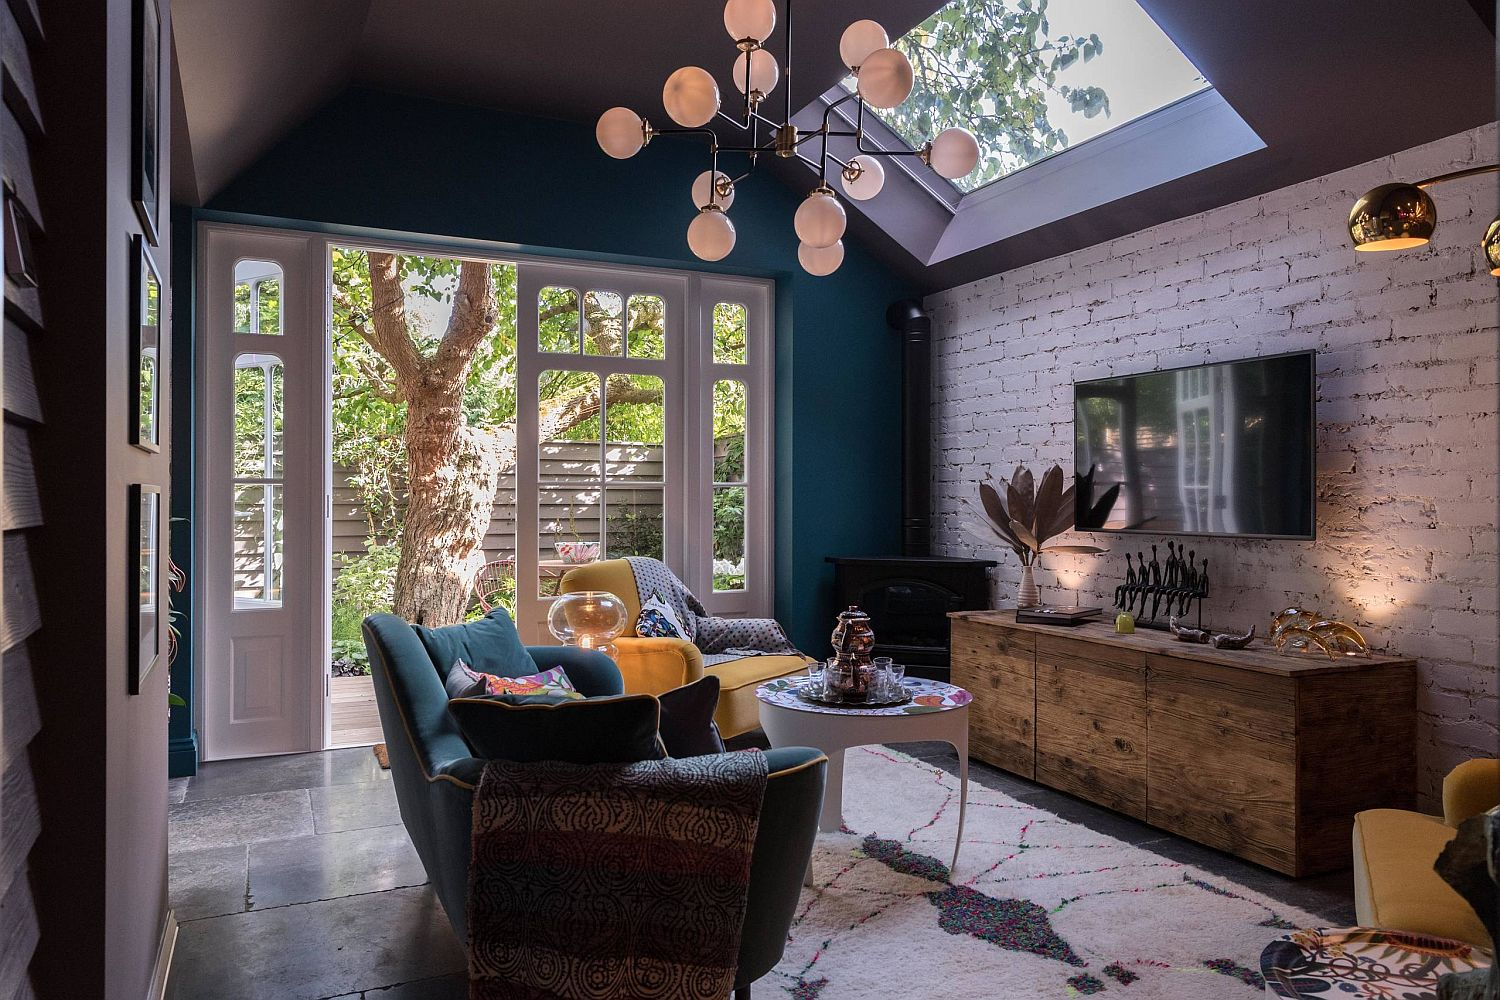 Small eclectic living room with brick wall backdrop, skylights and a view into the world outside